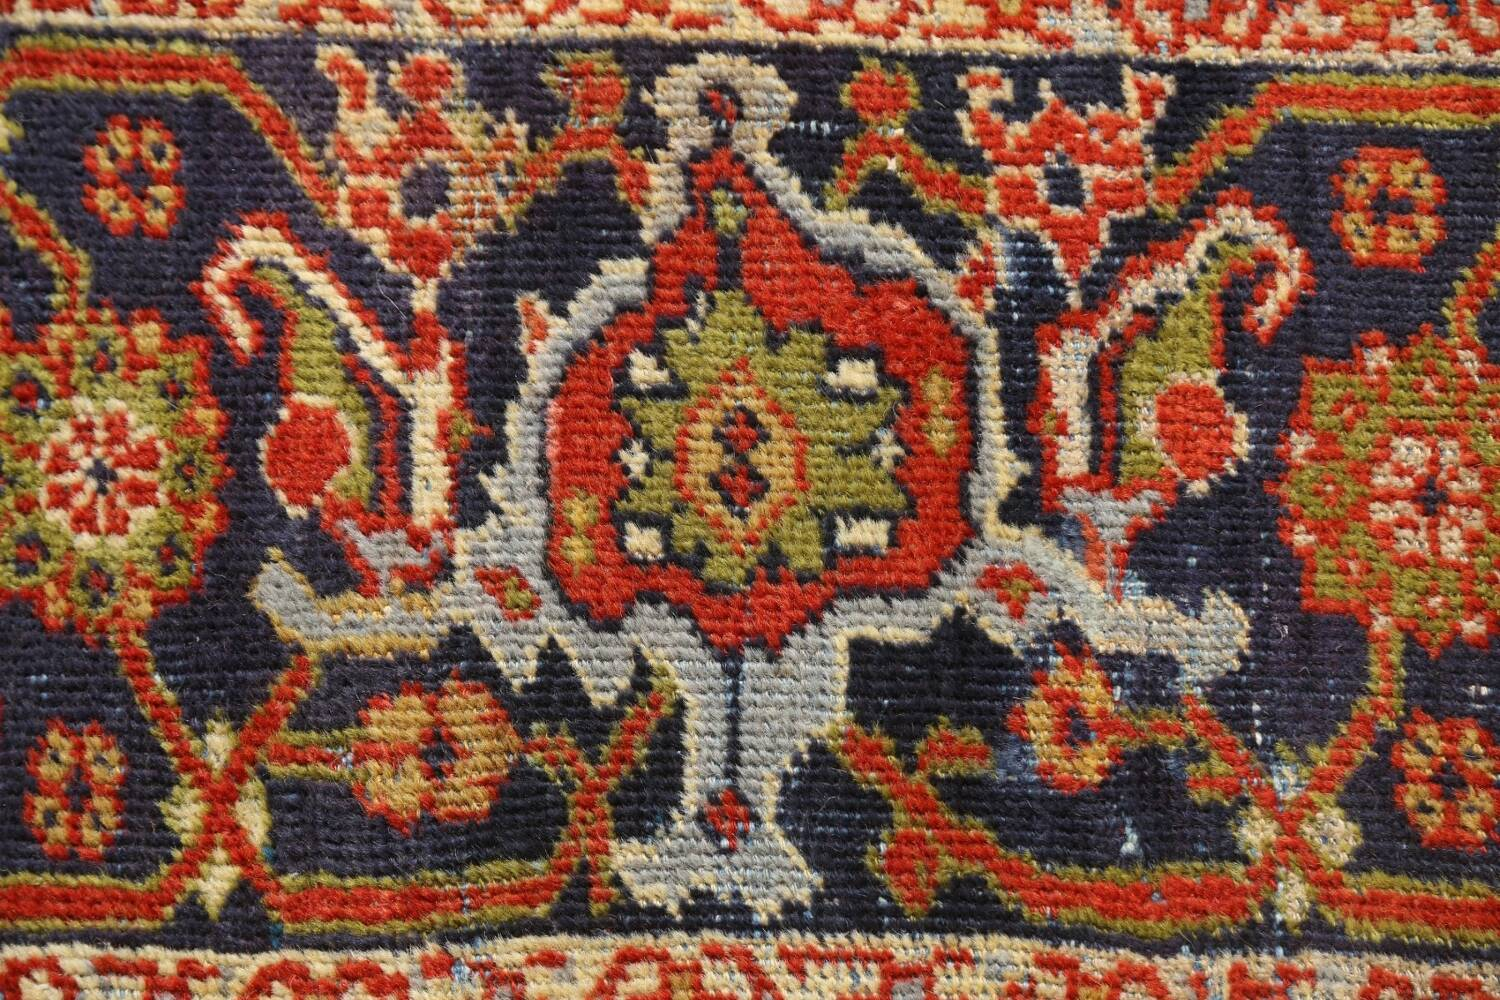 Pre-1900 Antique Vegetable Dye Sultanabad Persian Rug 15x22 image 10